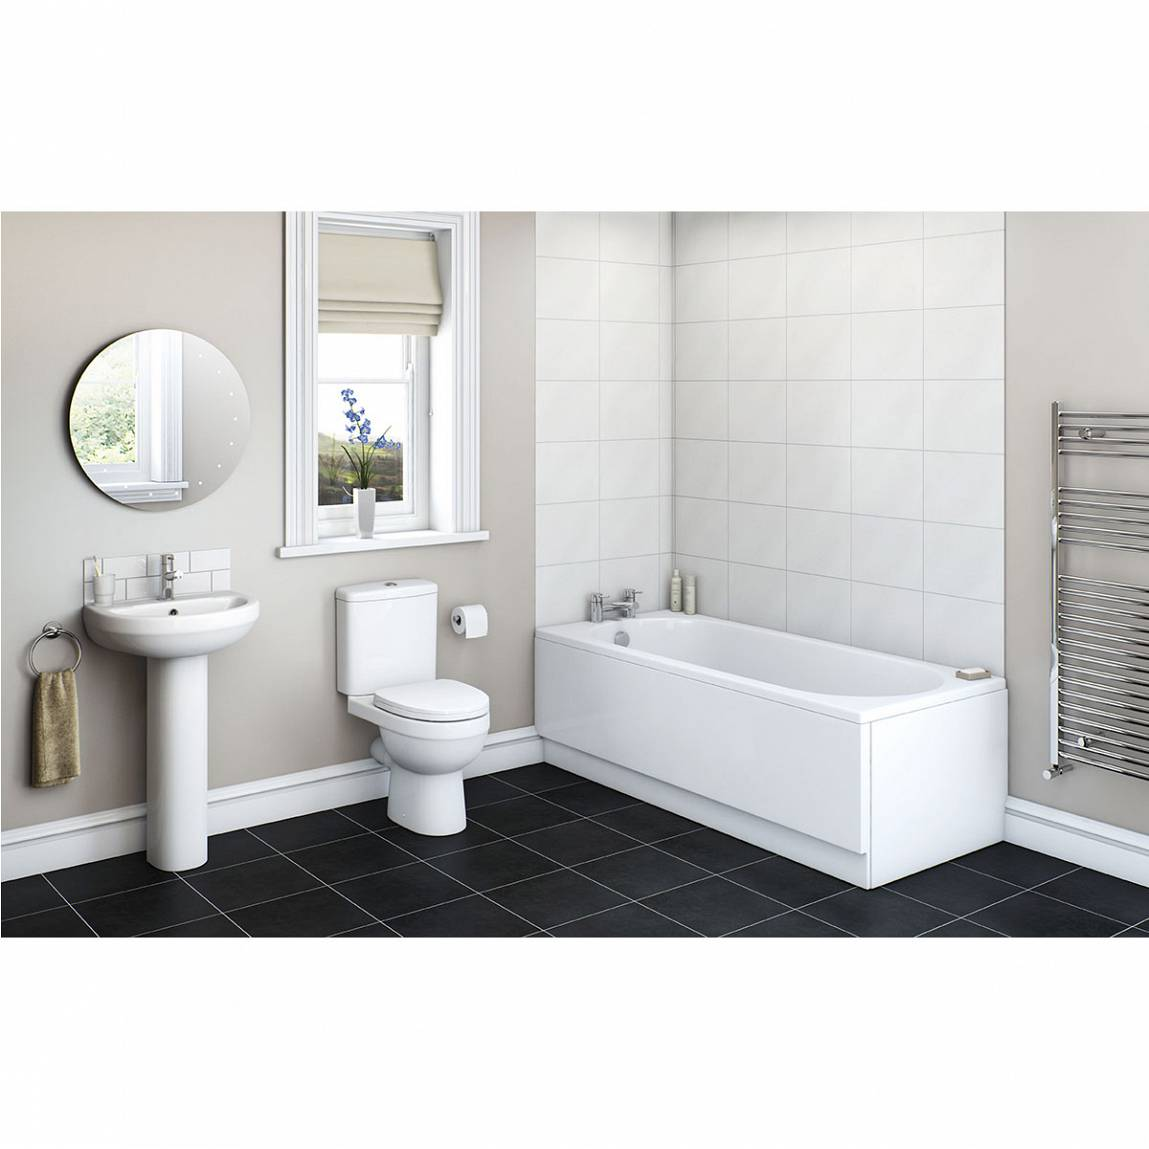 Image of Energy Bathroom Set with Richmond 1700 x 700 Bath Suite